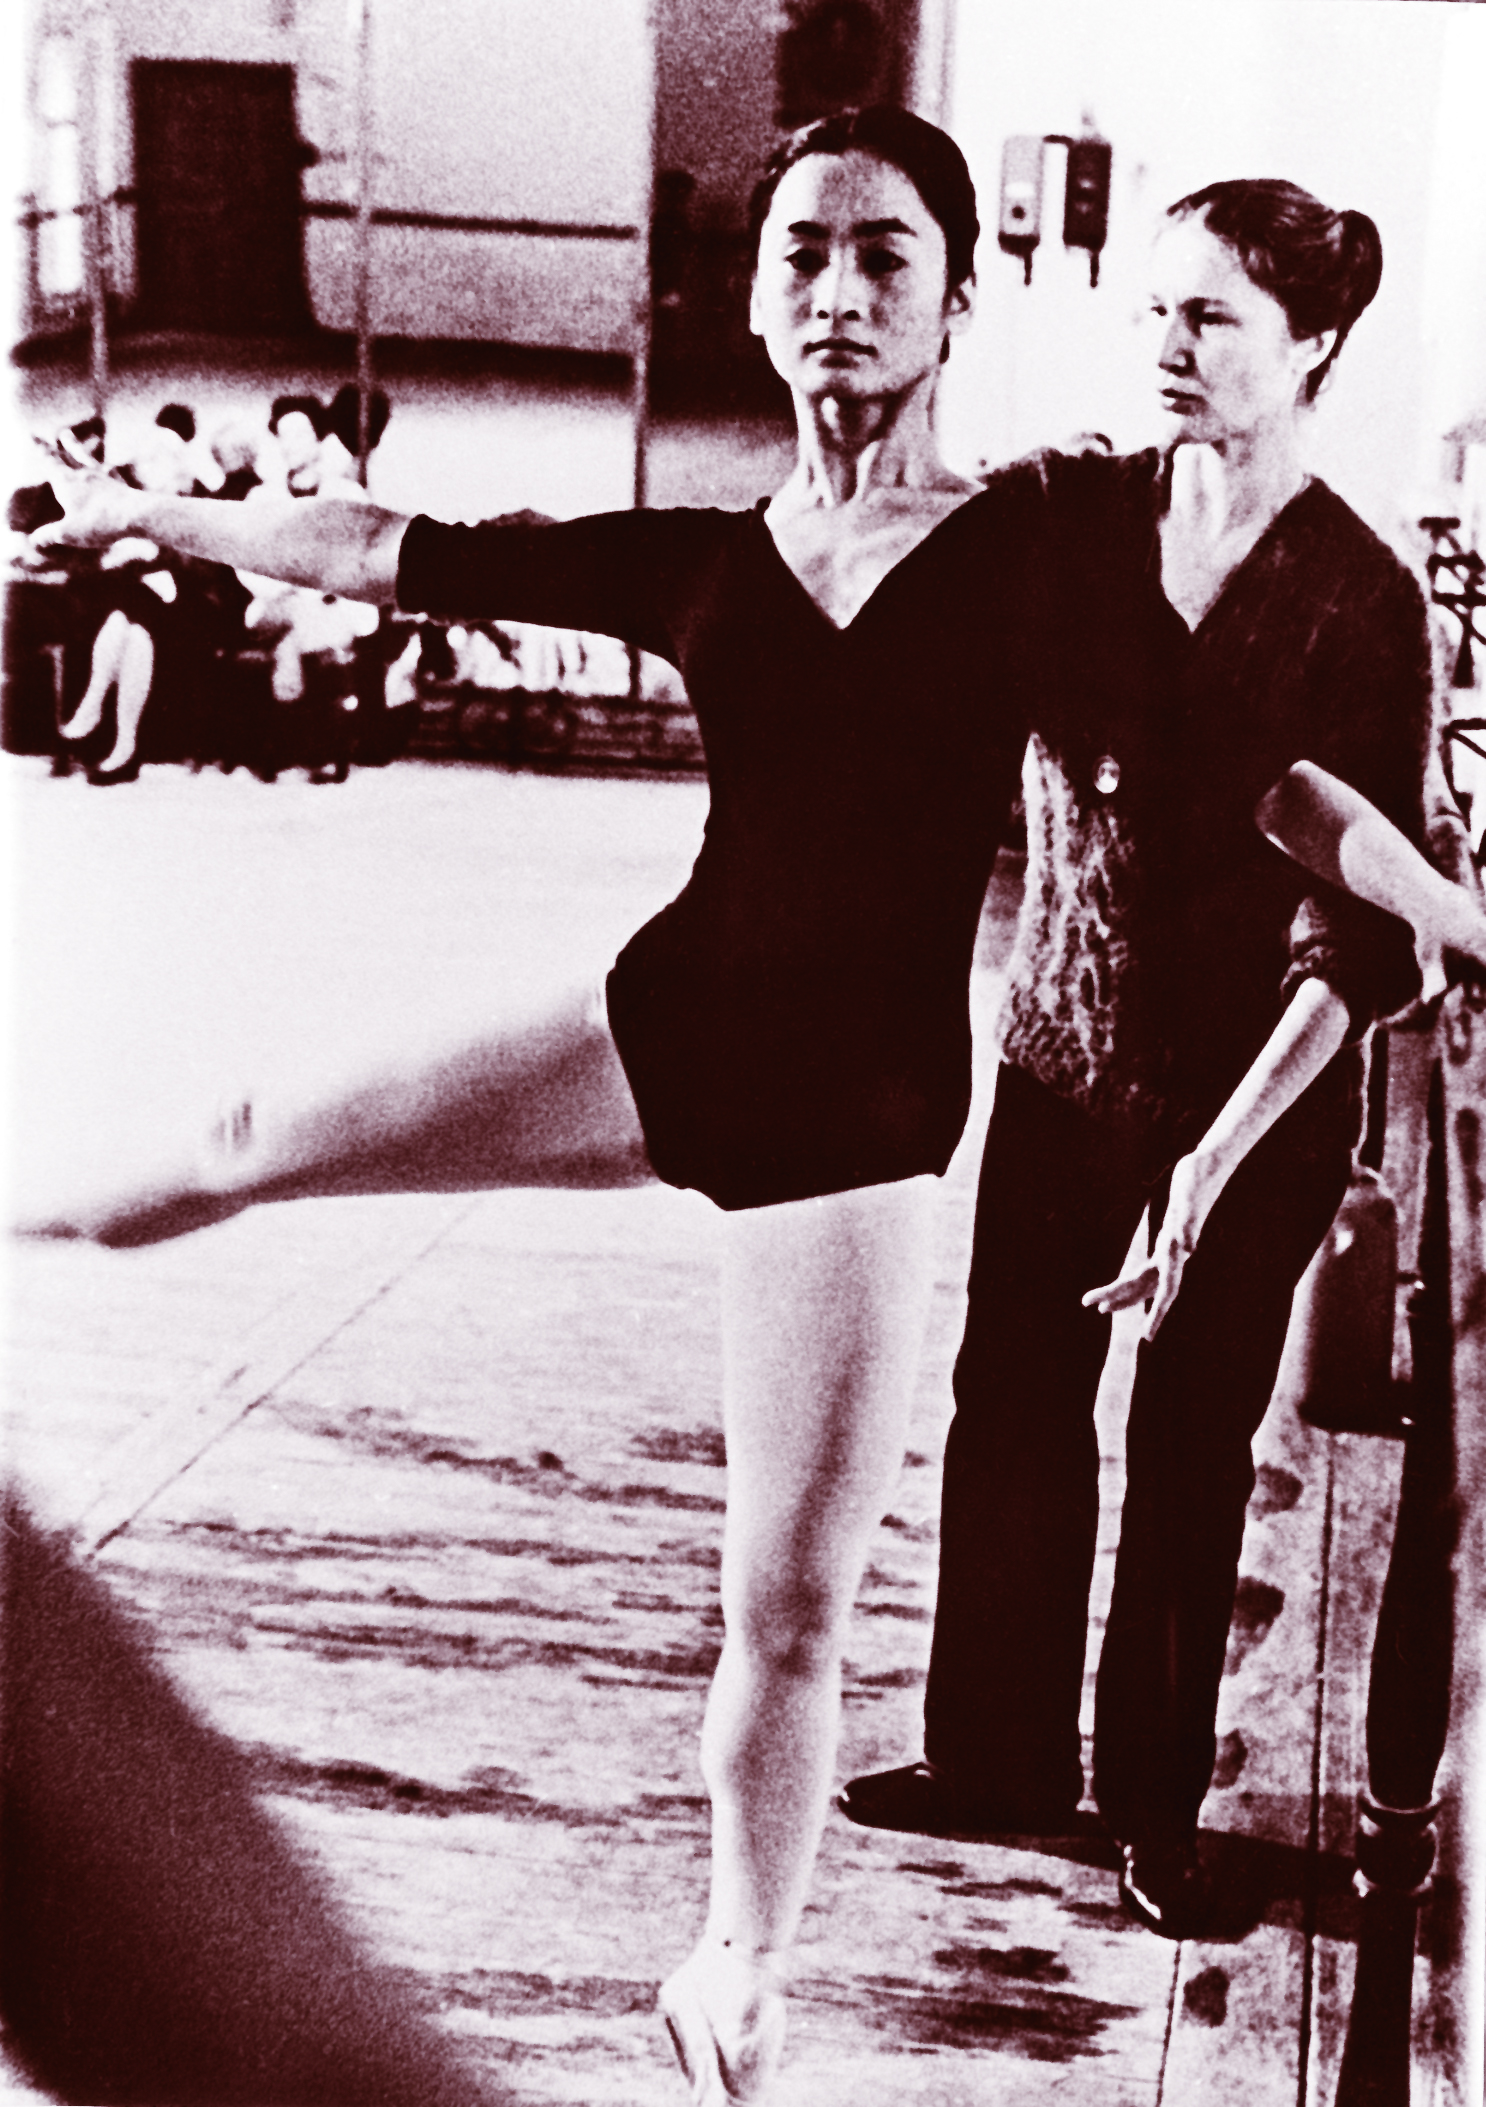 Tatiana Udalenkova spent countless hours personally mentoring Lisa – perfecting her technique until the movement flowed from her core and became second nature. Photo from the Ballet Manila Archives